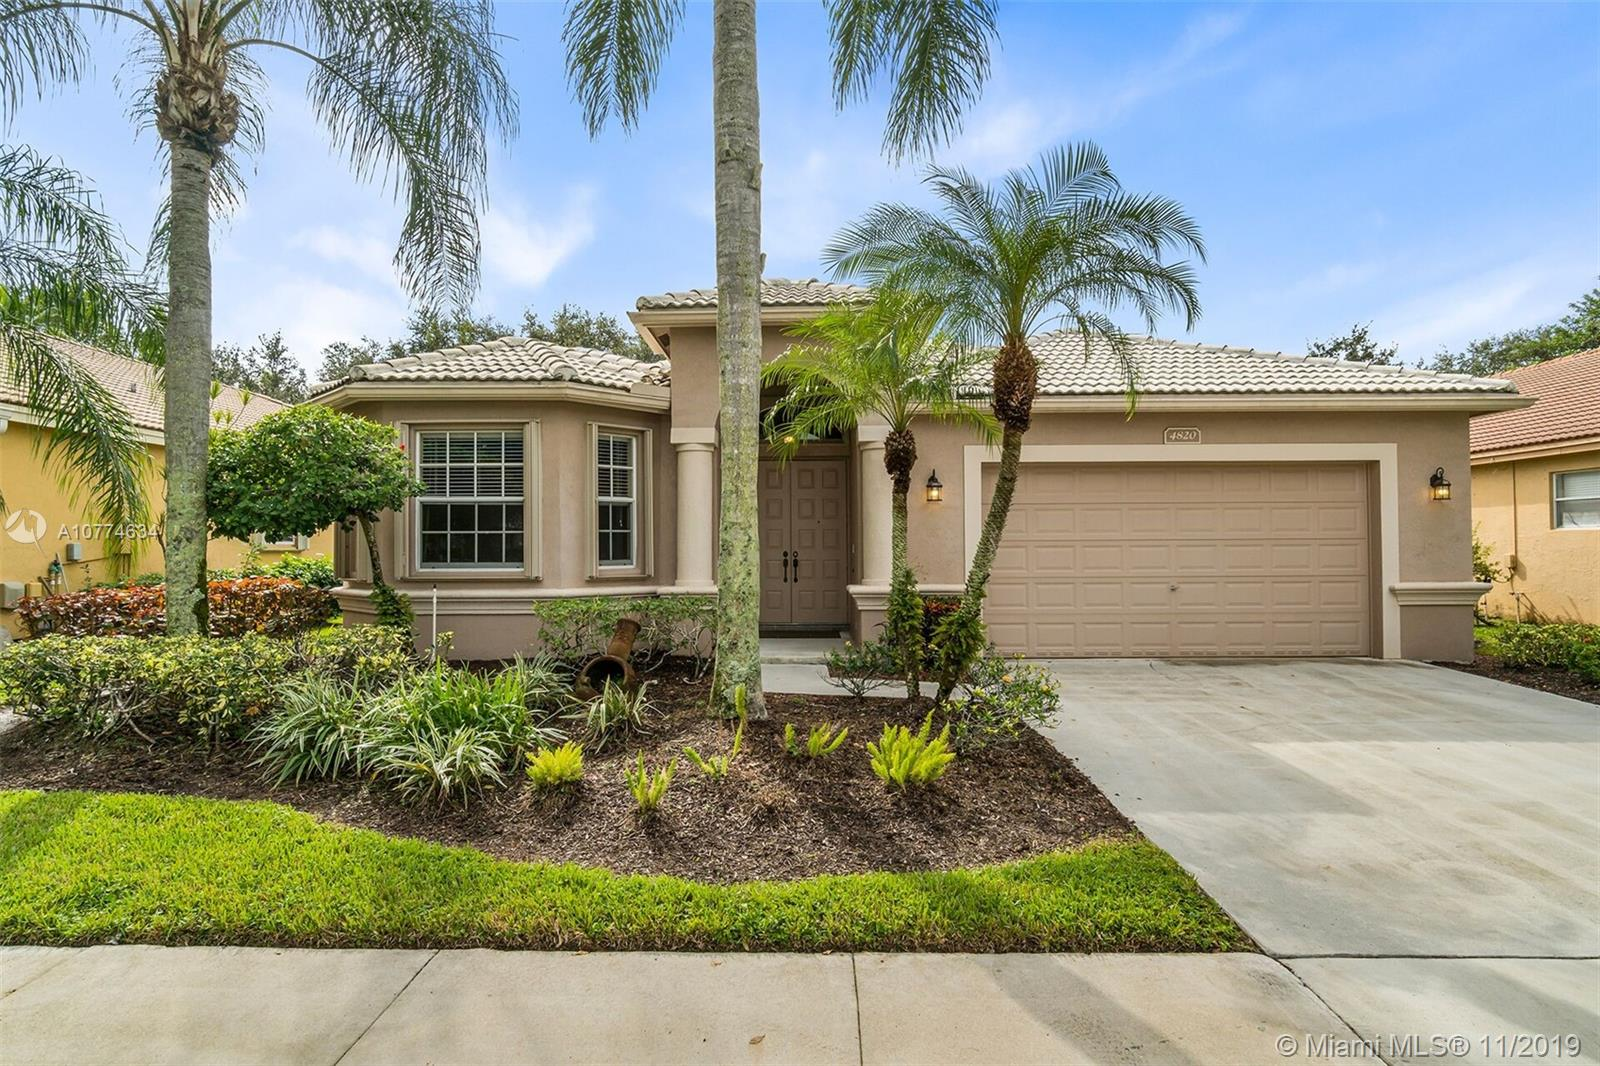 WELCOME TO YOUR NEW HOME.  BEAUTIFUL AND BRIGHT IN GATED COMMUNITY OF REGENCY LAKES 14' CEILINGS THROUGHOUT , GREAT ARCHITECTURE NOOKS AND SHELVES AT EVERY ANGLE. NEW COUNTERTOPS  IN KITCHEN. NEW LARGE CAPACITY WASHER&DRYER, NEW FLOORS IN LIVING ROOM, ALL LG APPLIANCES. WATER SOFTENER SYSTEM NEW A/C & WATER HEATER. 14 X 26 POOL WITH SALT WATER FILTRATION SYSTEM AND NEW PUMP AND HEATER. ACORDIAN SHUTTERS FOR ALL WINDOWS.  HOA INCLUDES SO MUCH, CUT AND TRIM ALL GRASS WEEKLY, FERTILIZE ANNUALLY, FREE ADT HOME SECURITY, BASIC CABLE, 24 HR MANNED GATE, CLUBHOUSE AND PARTY ROOM, COMMUNITY POOL, EXERCISE ROOM, TENNIS COURTS, KIDDIE PARK. EASY TO SHOW